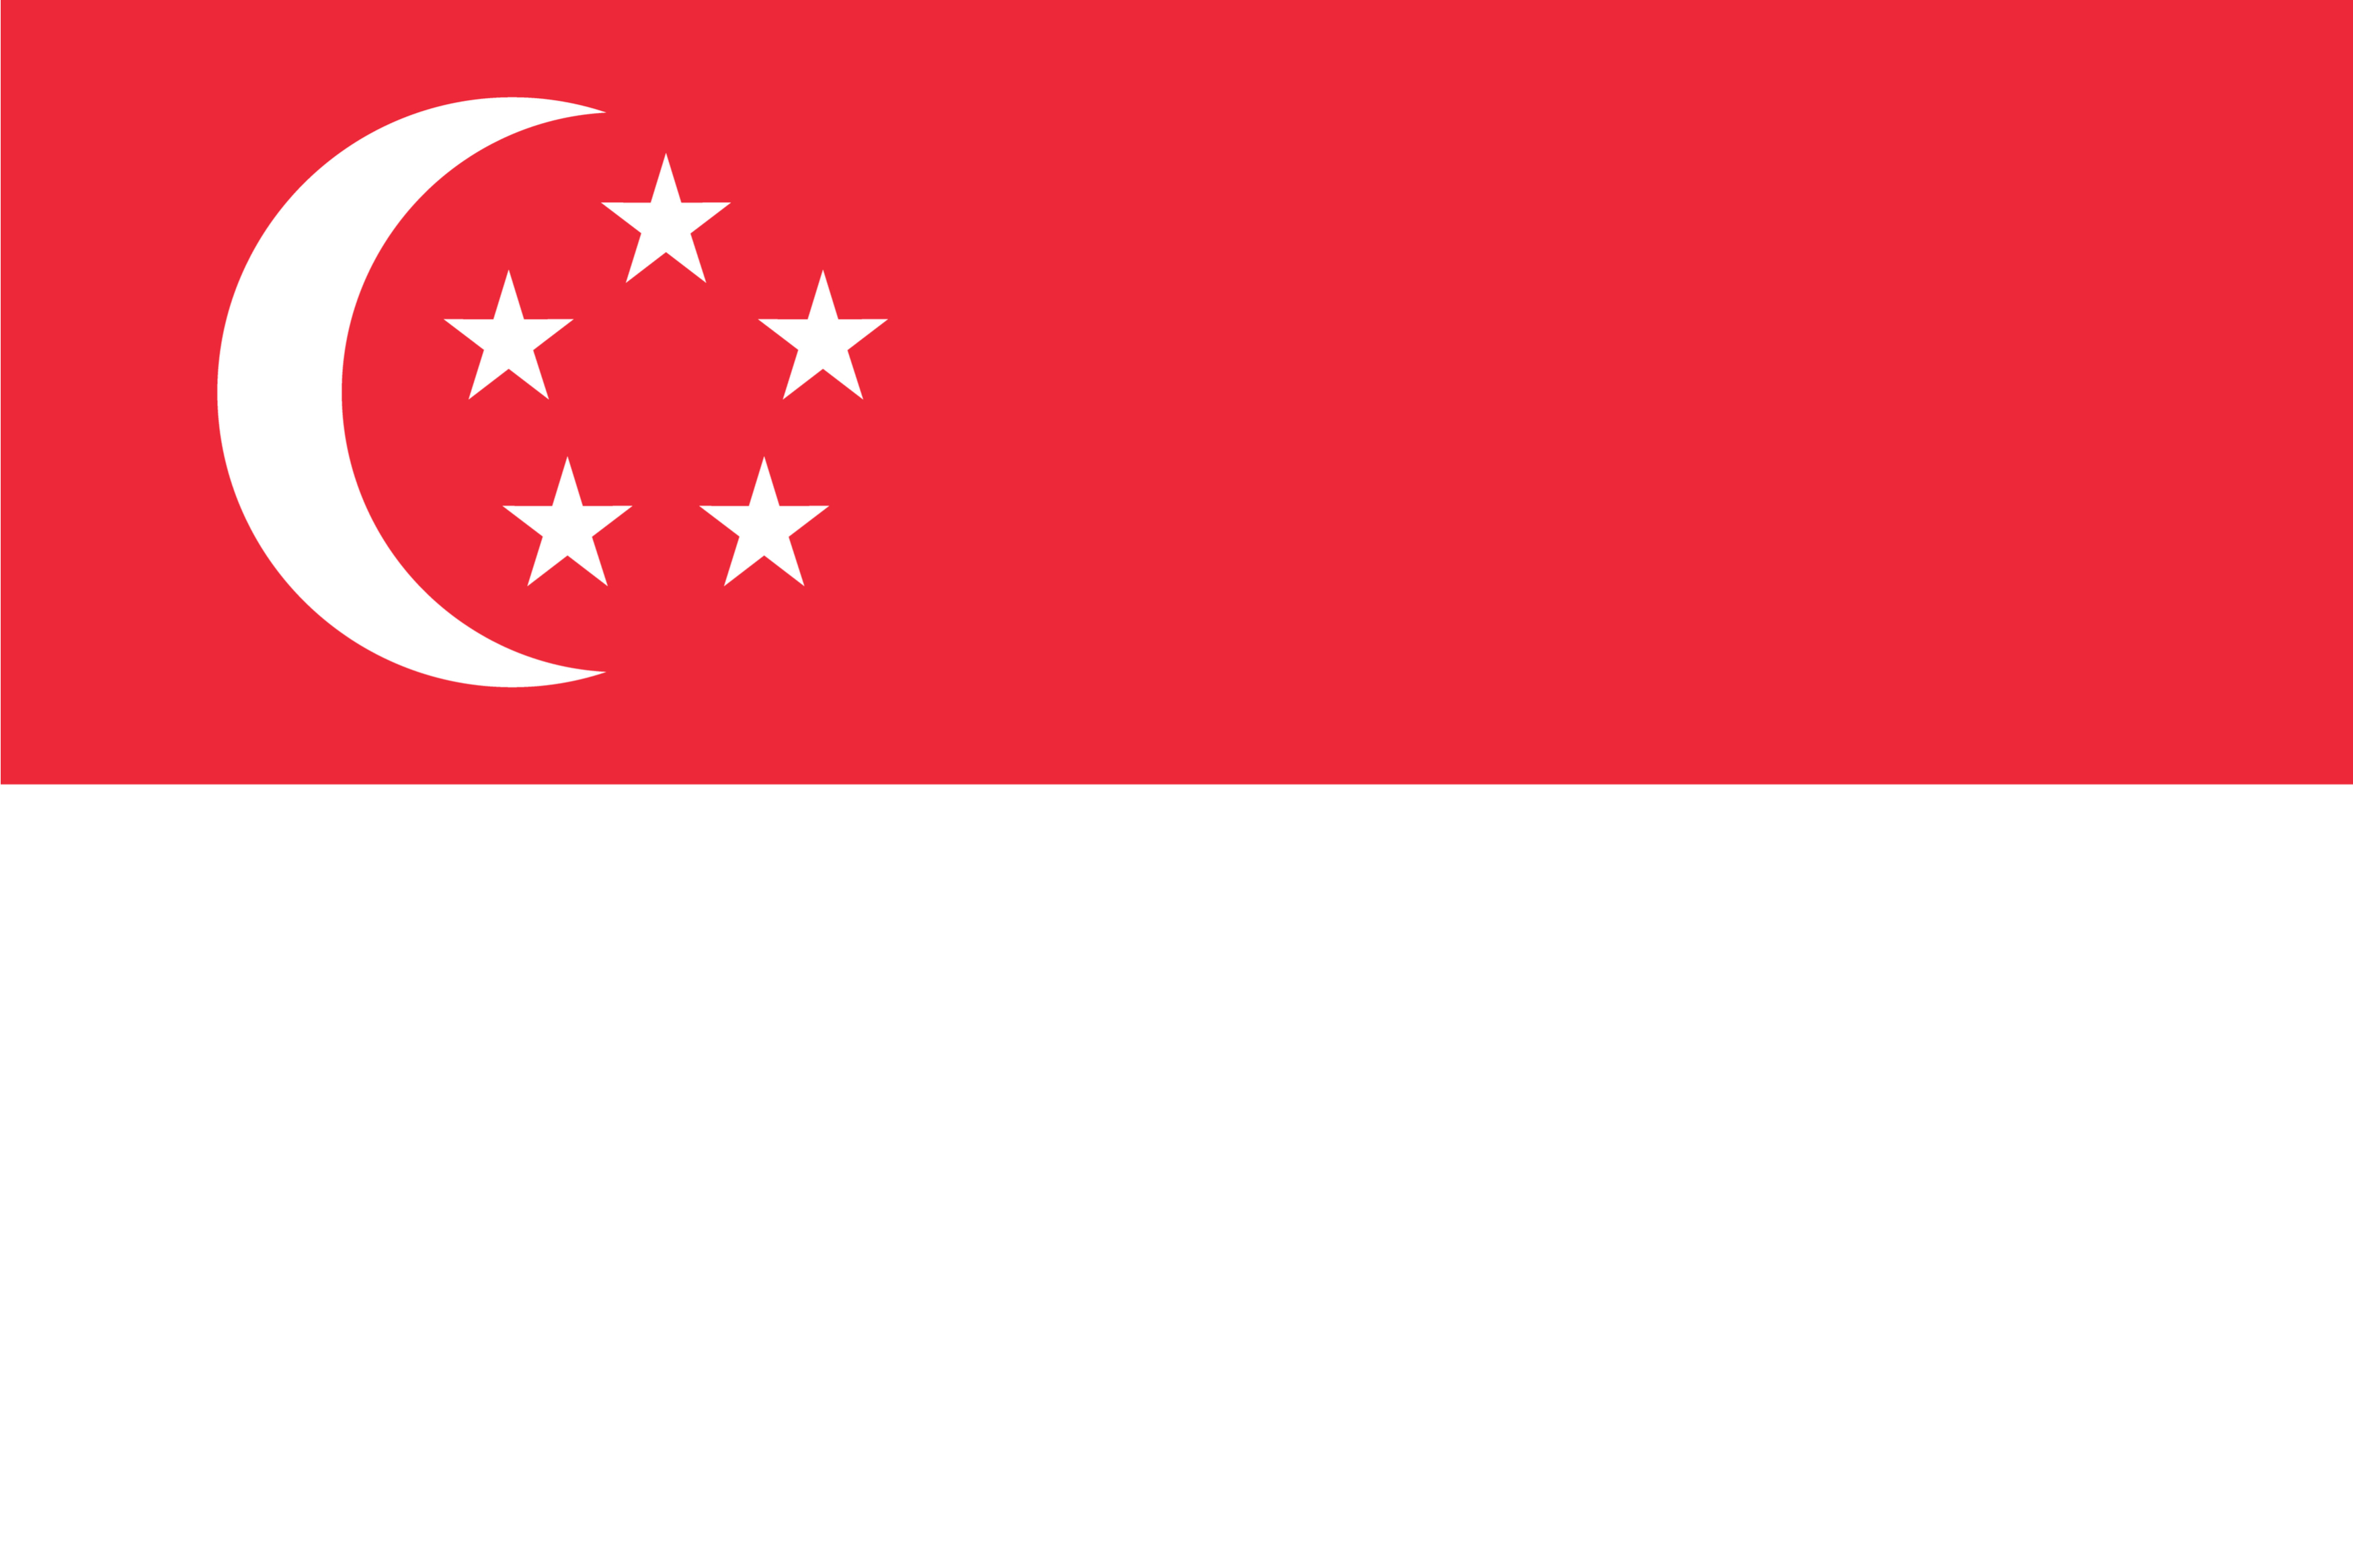 The flag of Singapore.